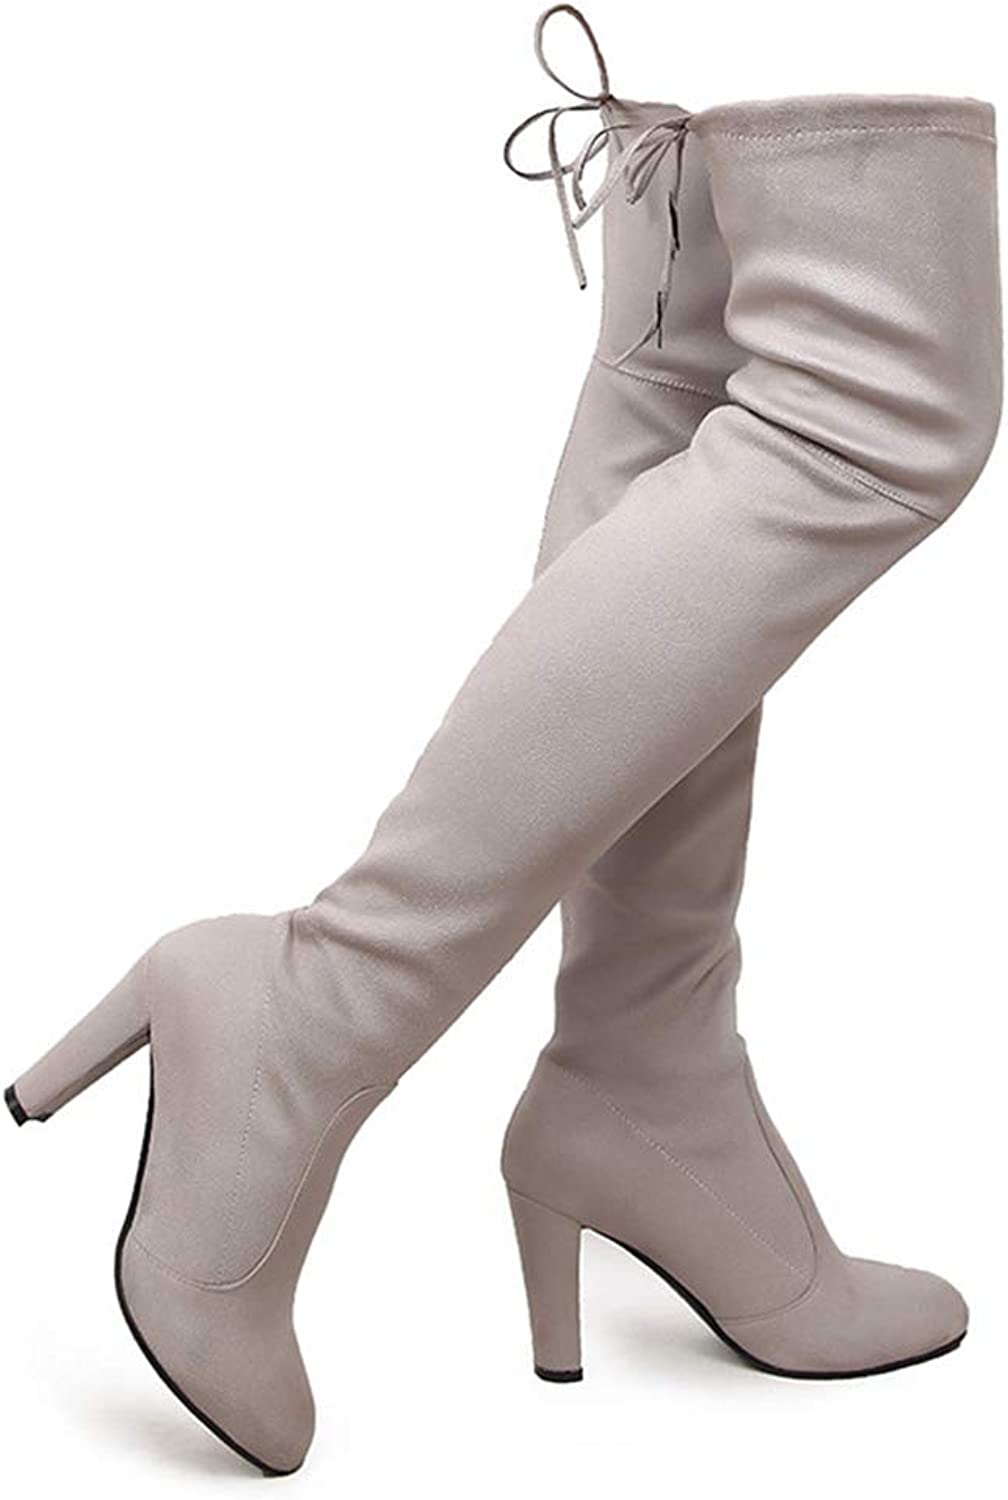 Women Winter Stretch Thigh High Boots Female High Heels Suede Ladies shoes Over The Knee High Tall Riding Boot